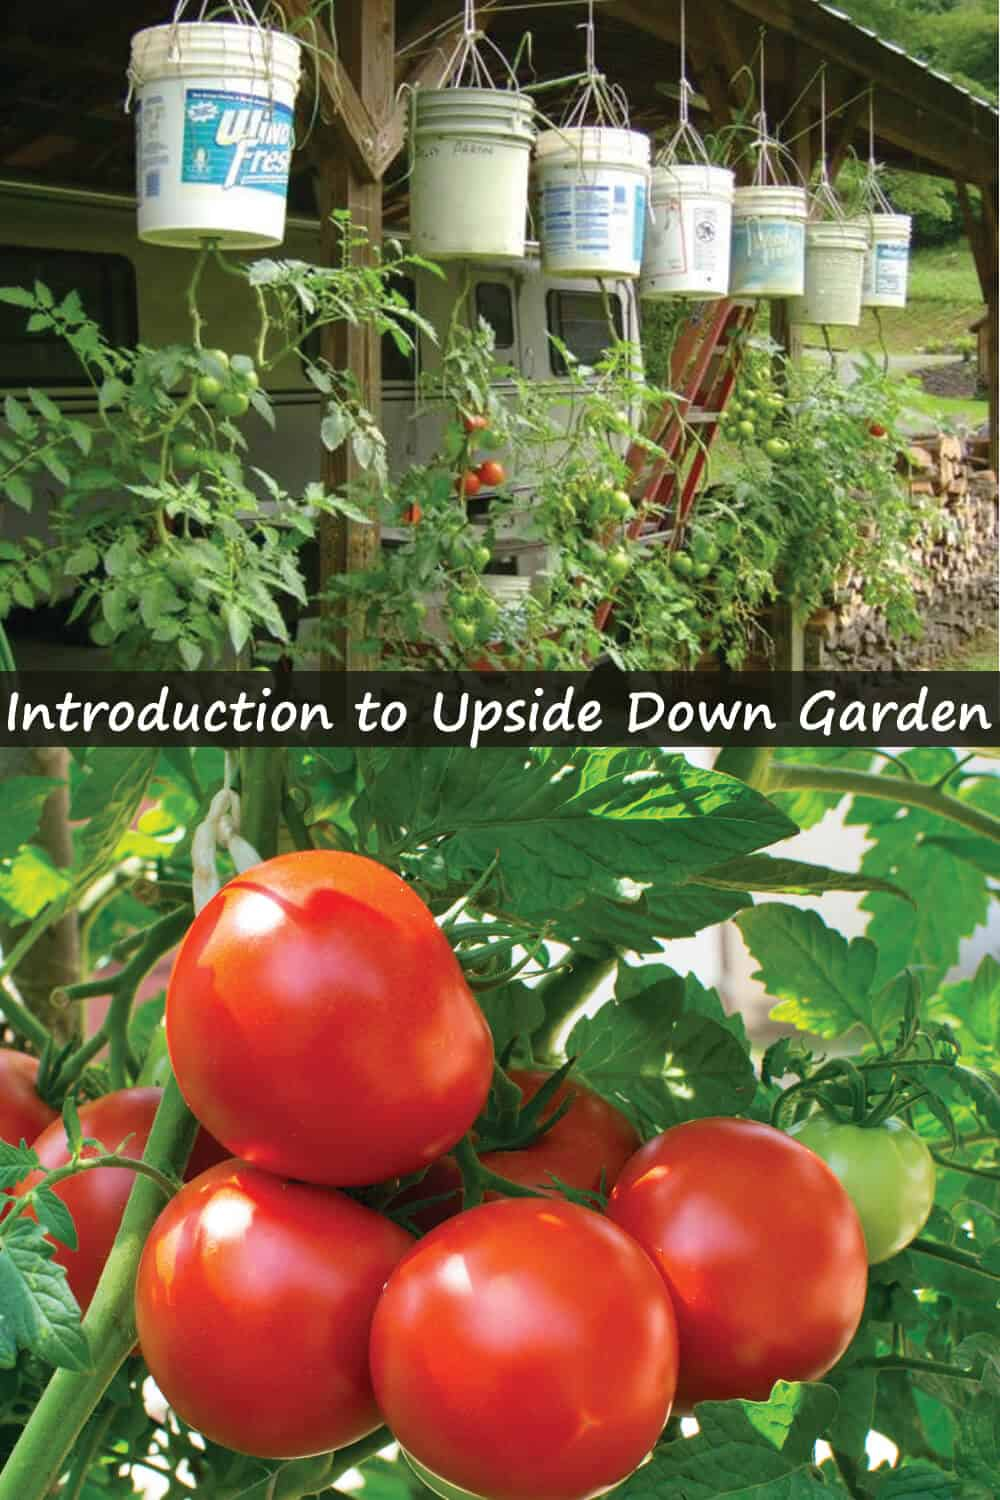 Introduction to Upside Down Gardening